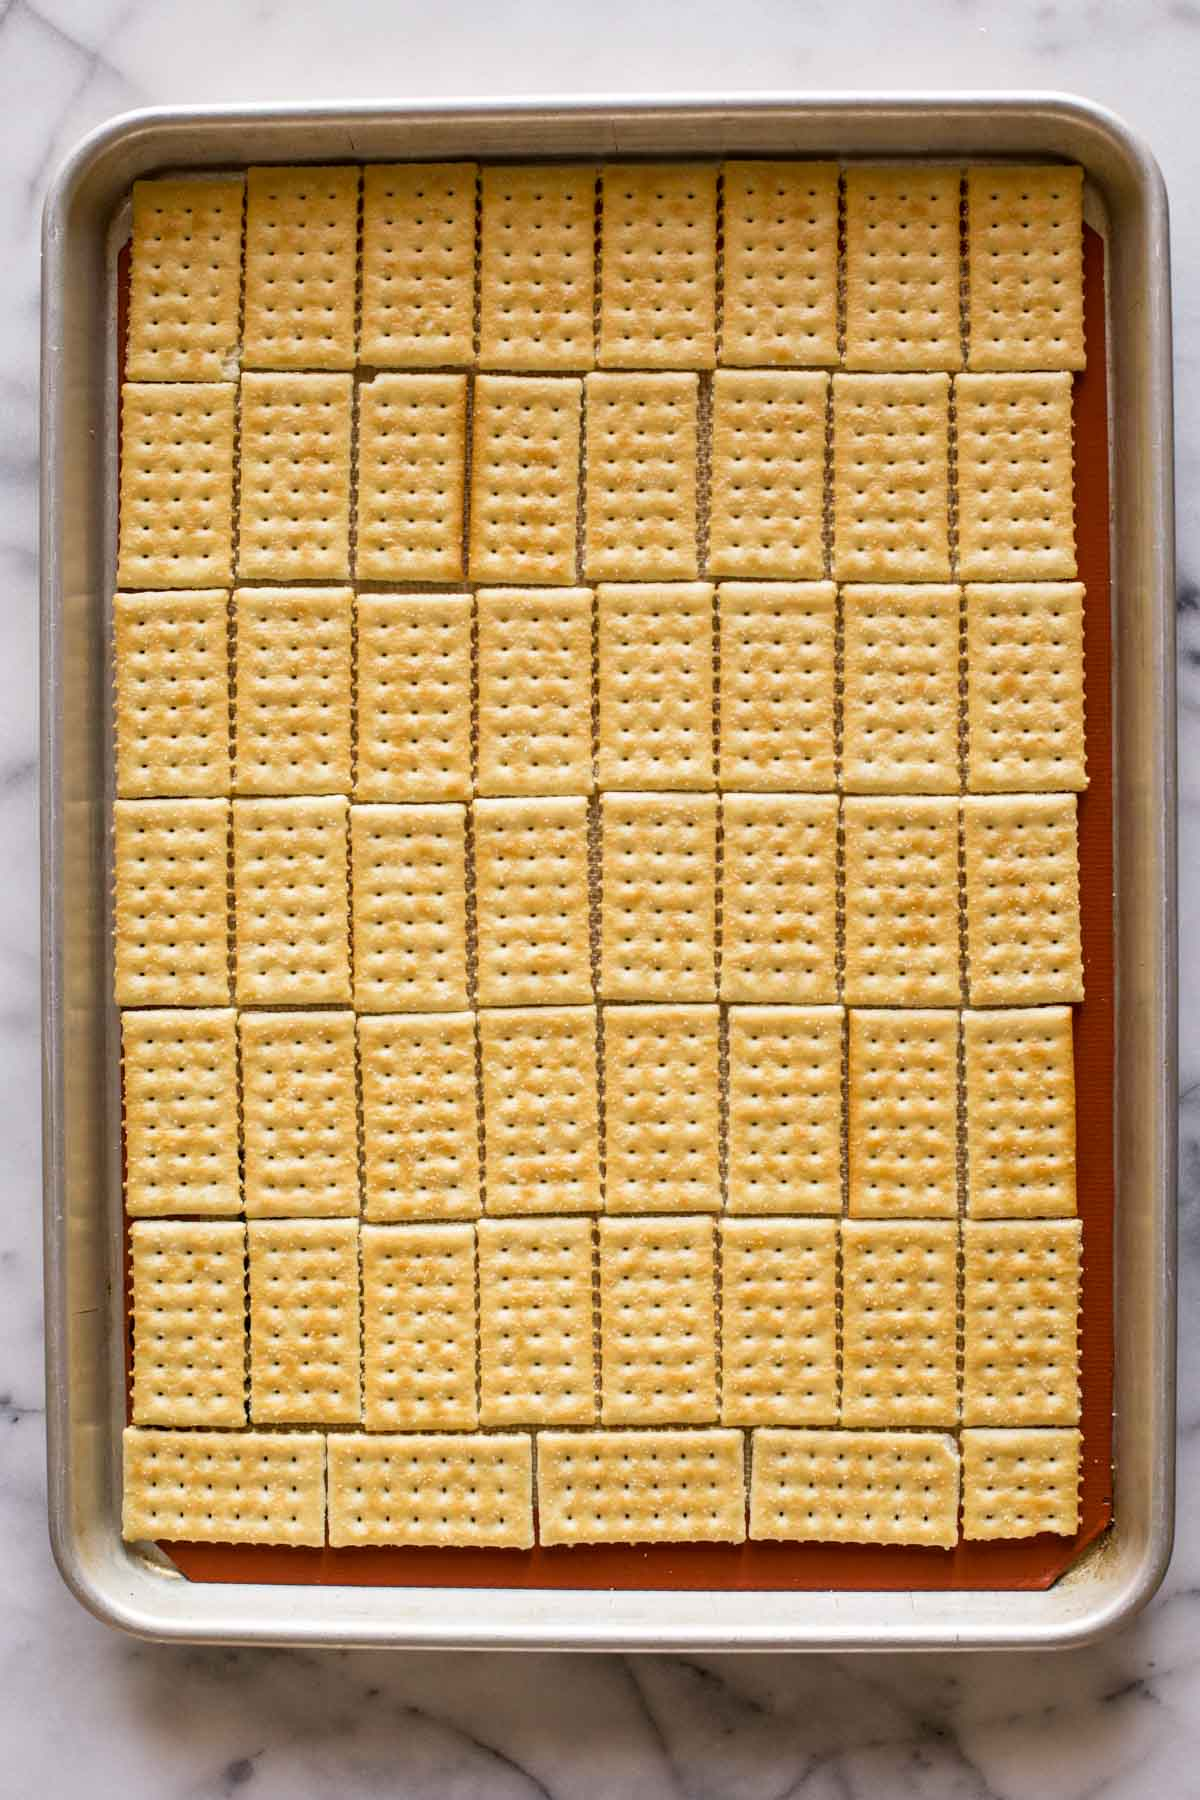 A Silpat lined, rimmed baking sheet with butter crackers arranged in a single layer for the base of the Take Five Cracker Bark.